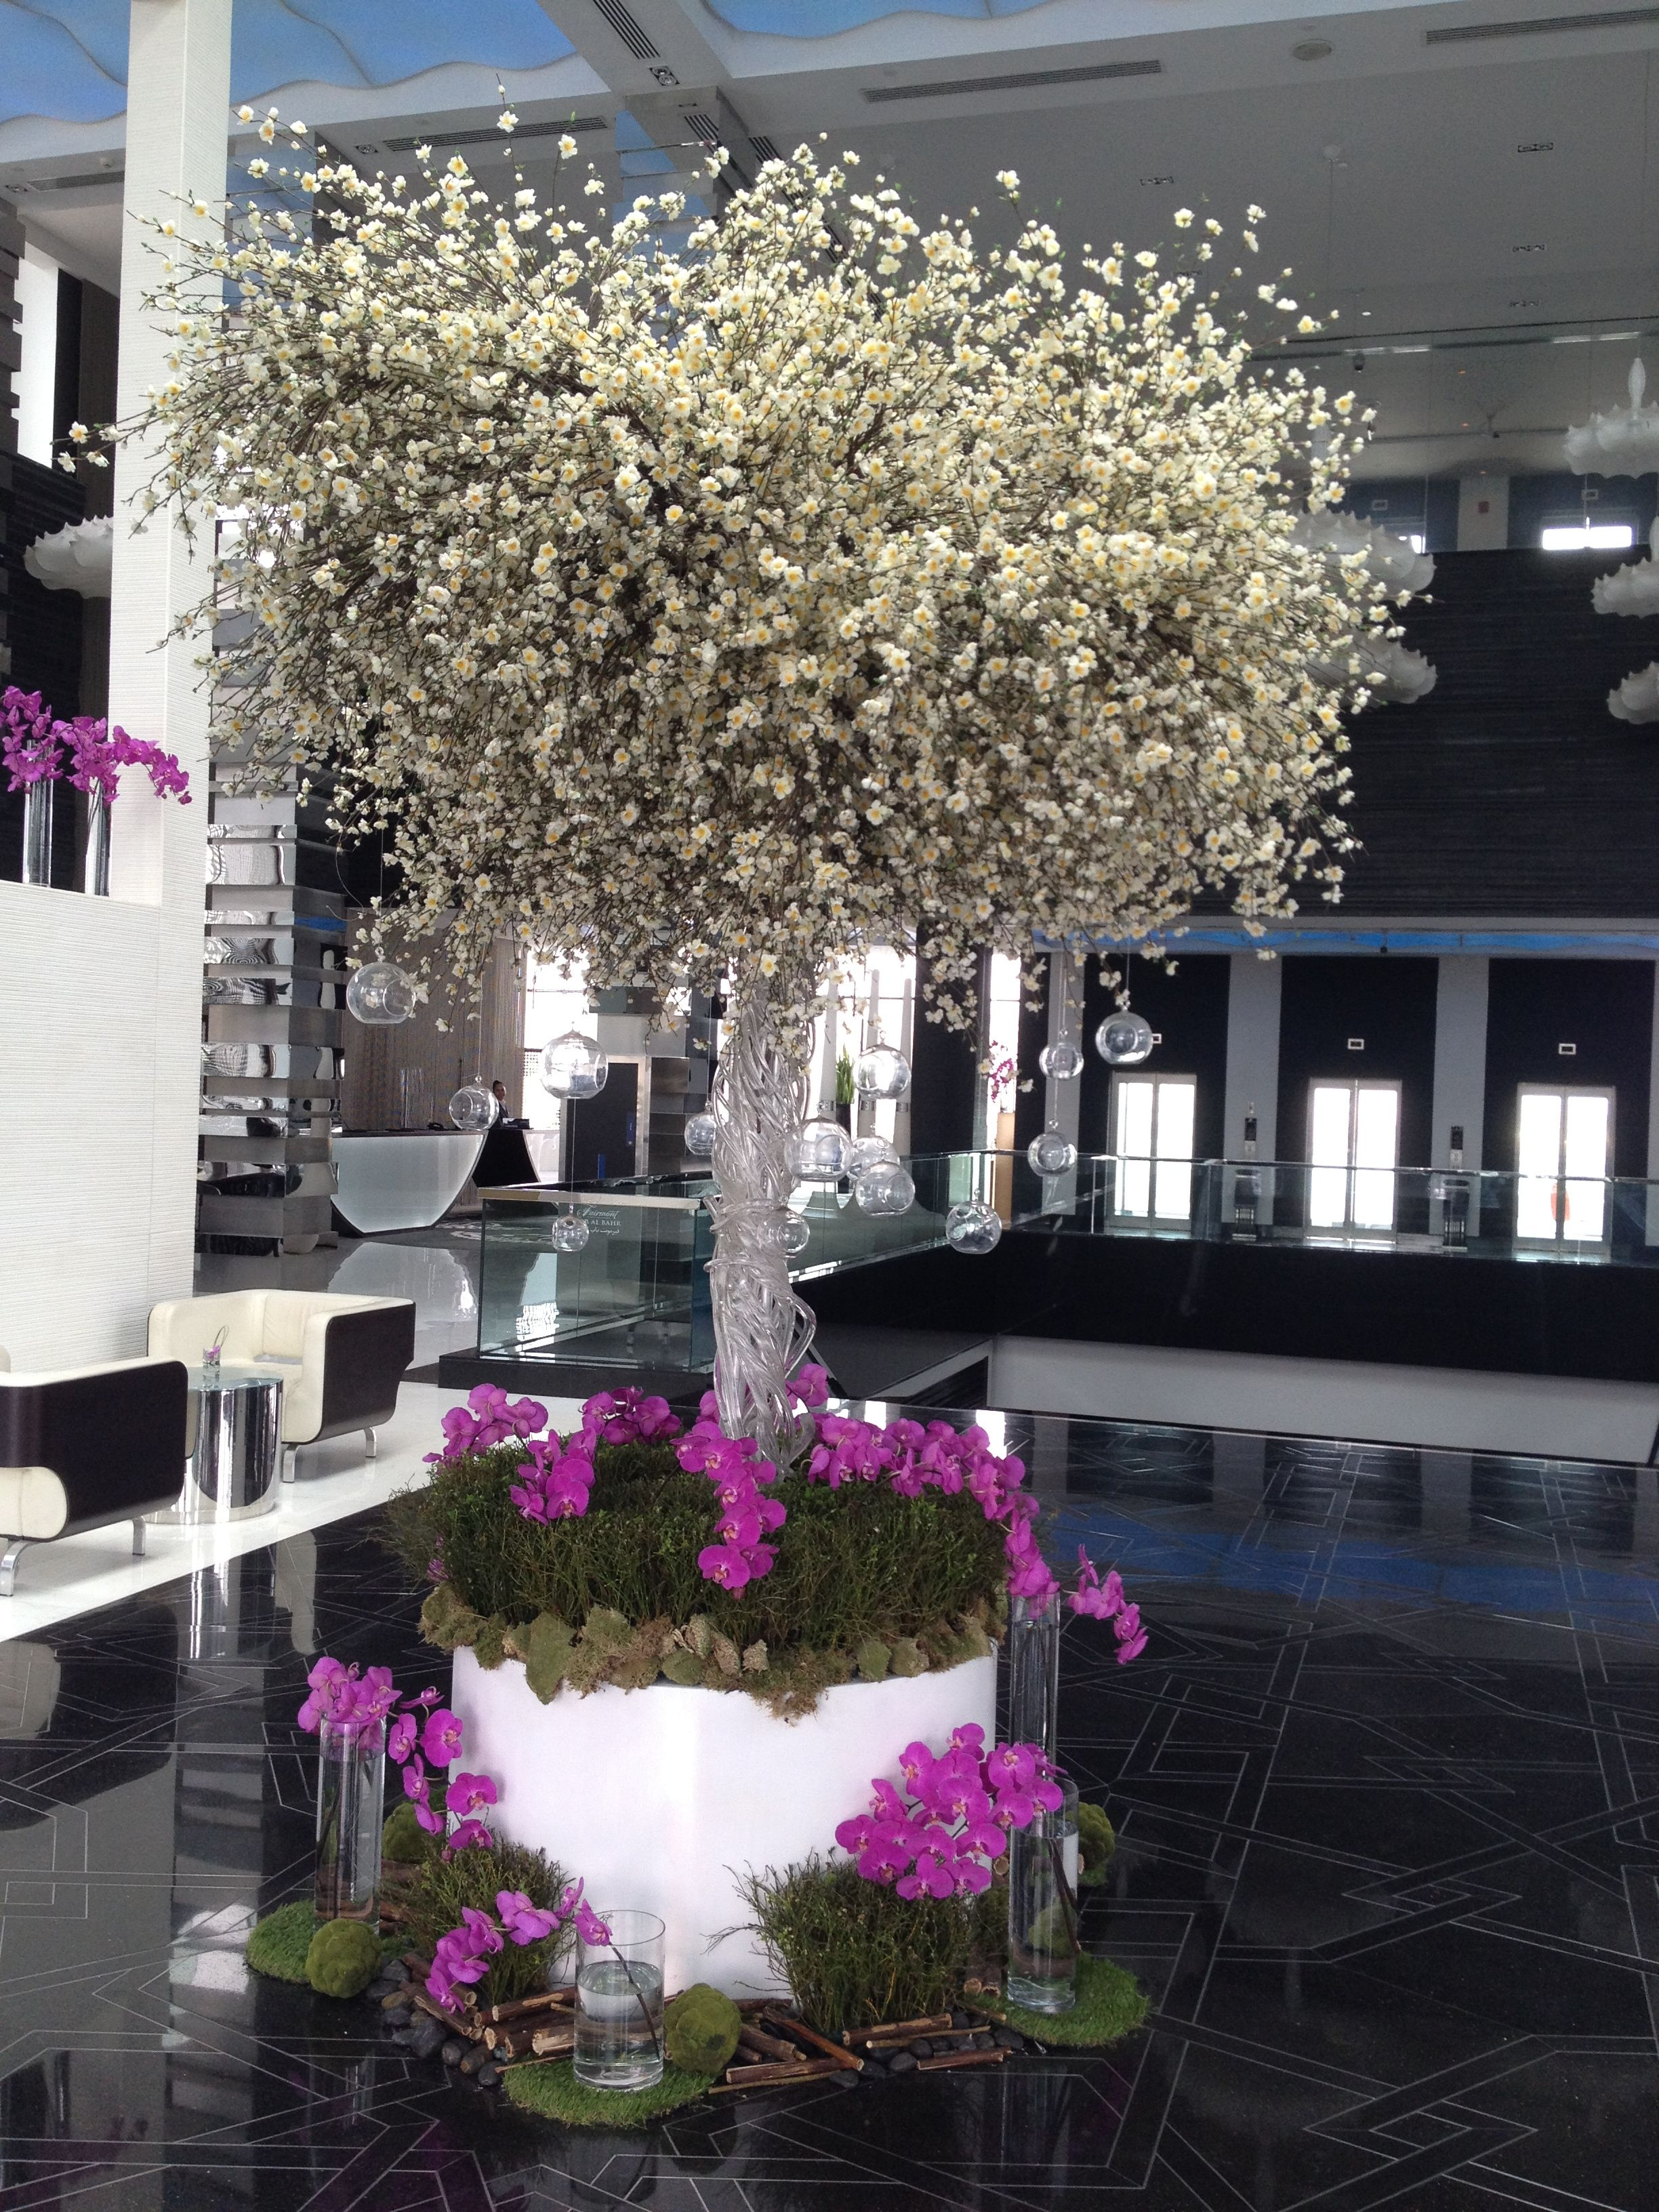 Hotel entrance decoration, hanging candles on a tree. Fairmont, Abu Dhabi